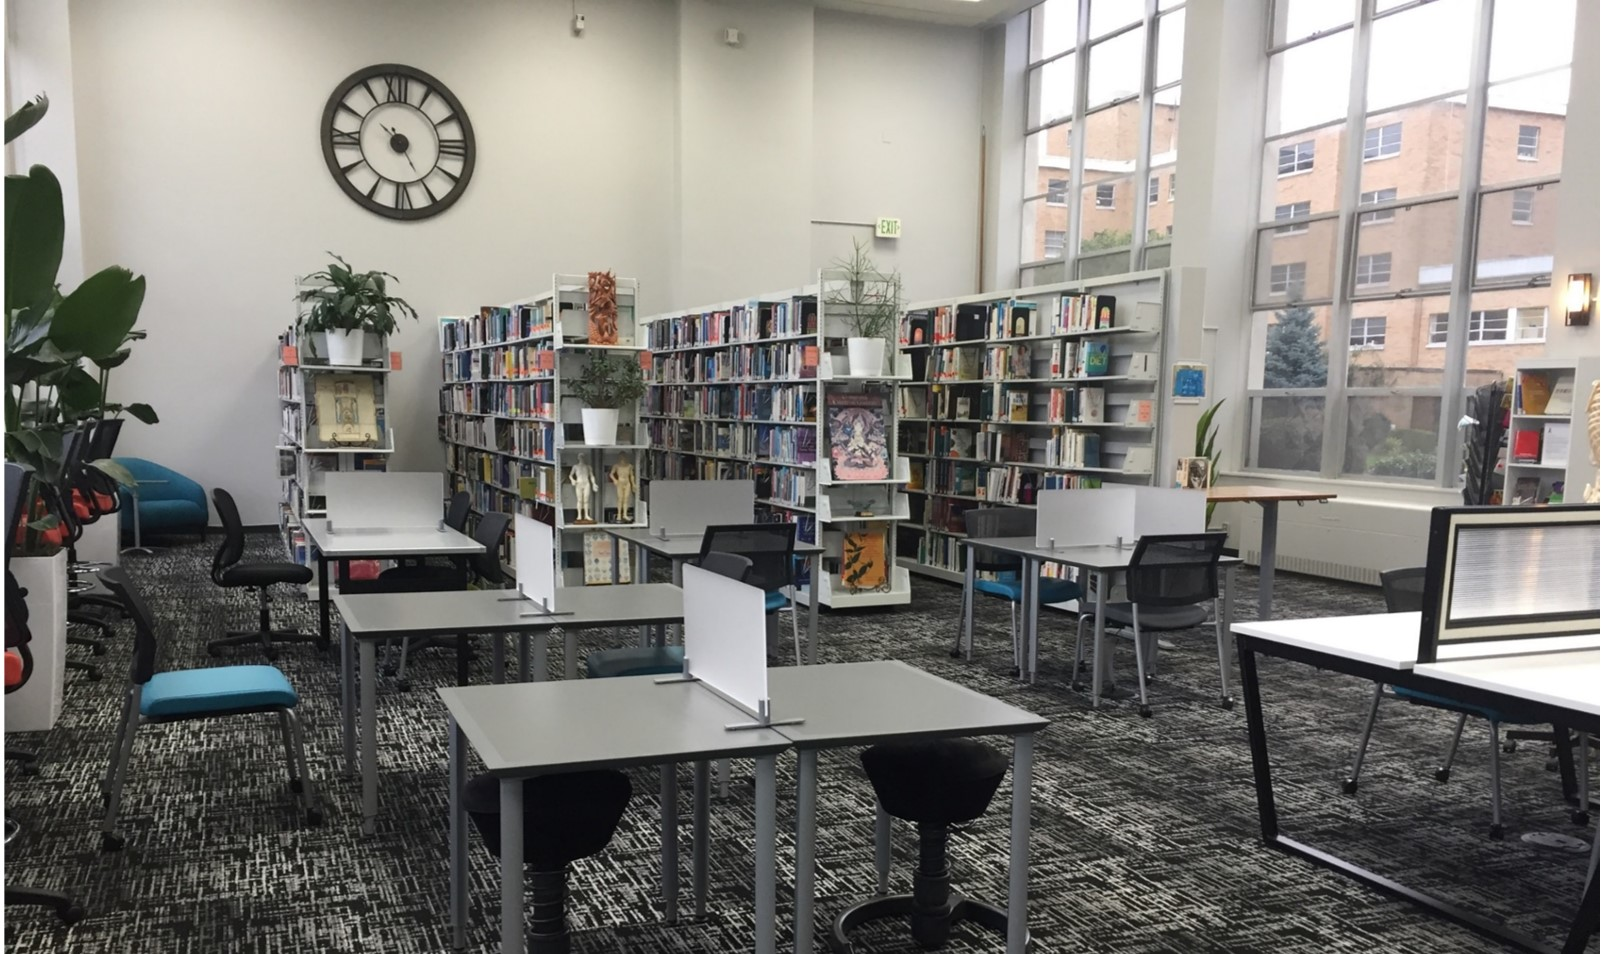 Library shelving and desks